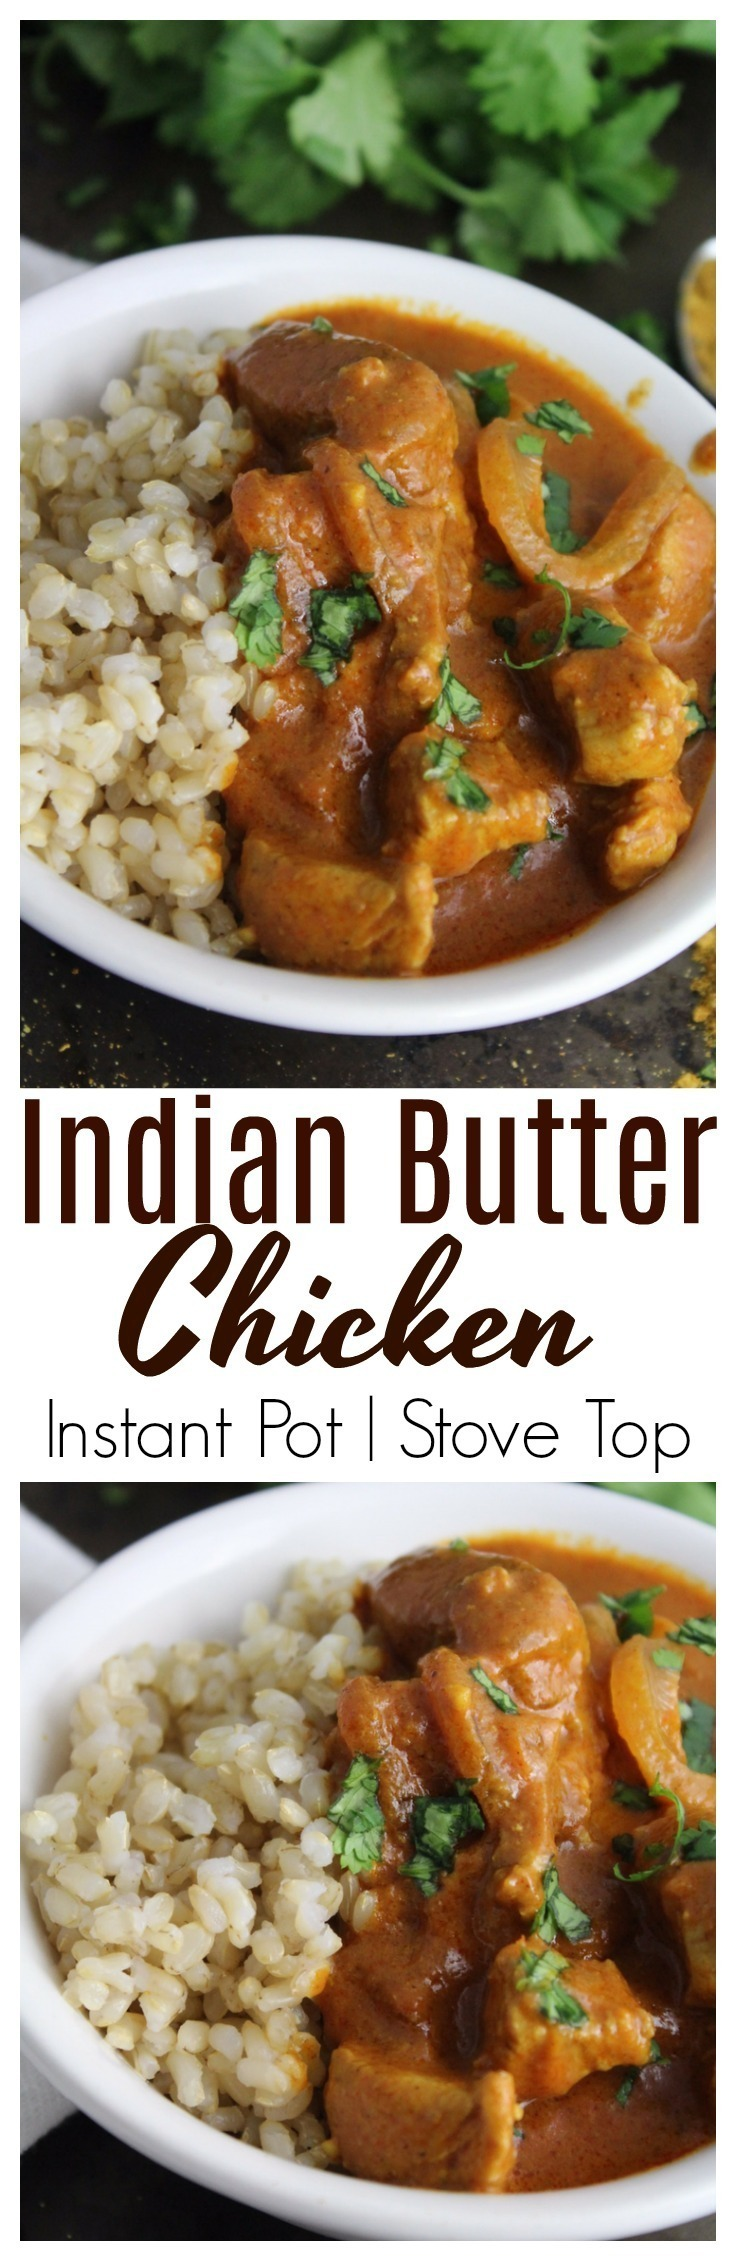 This Indian Butter Chicken uses rich, fragrant spices combined with chicken in a thick, butter sauce that's delicious when served on rice!